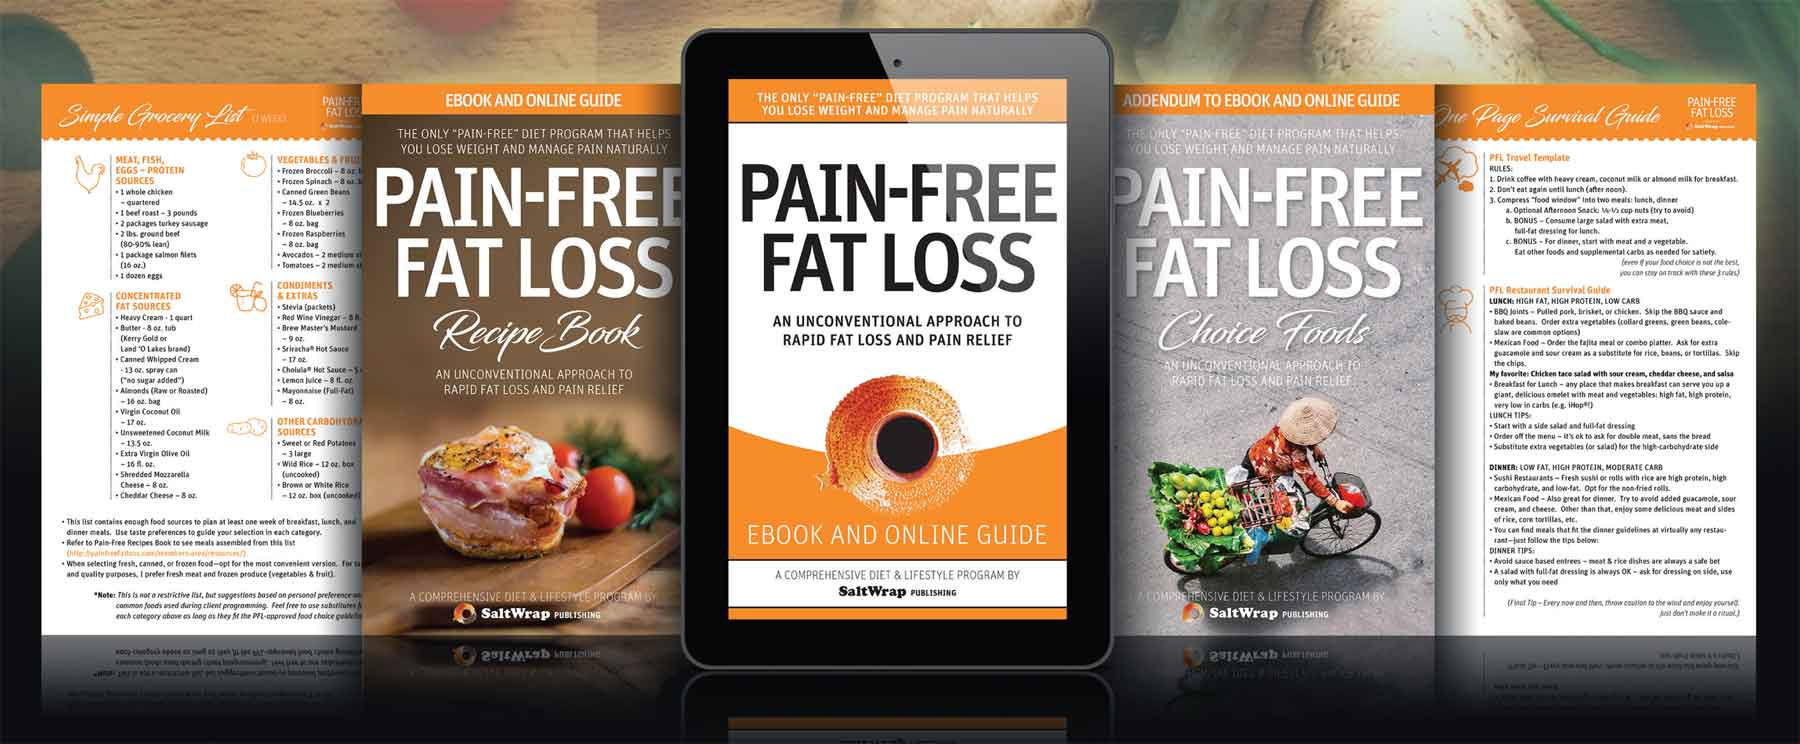 Pain-Free Fat Loss Program information